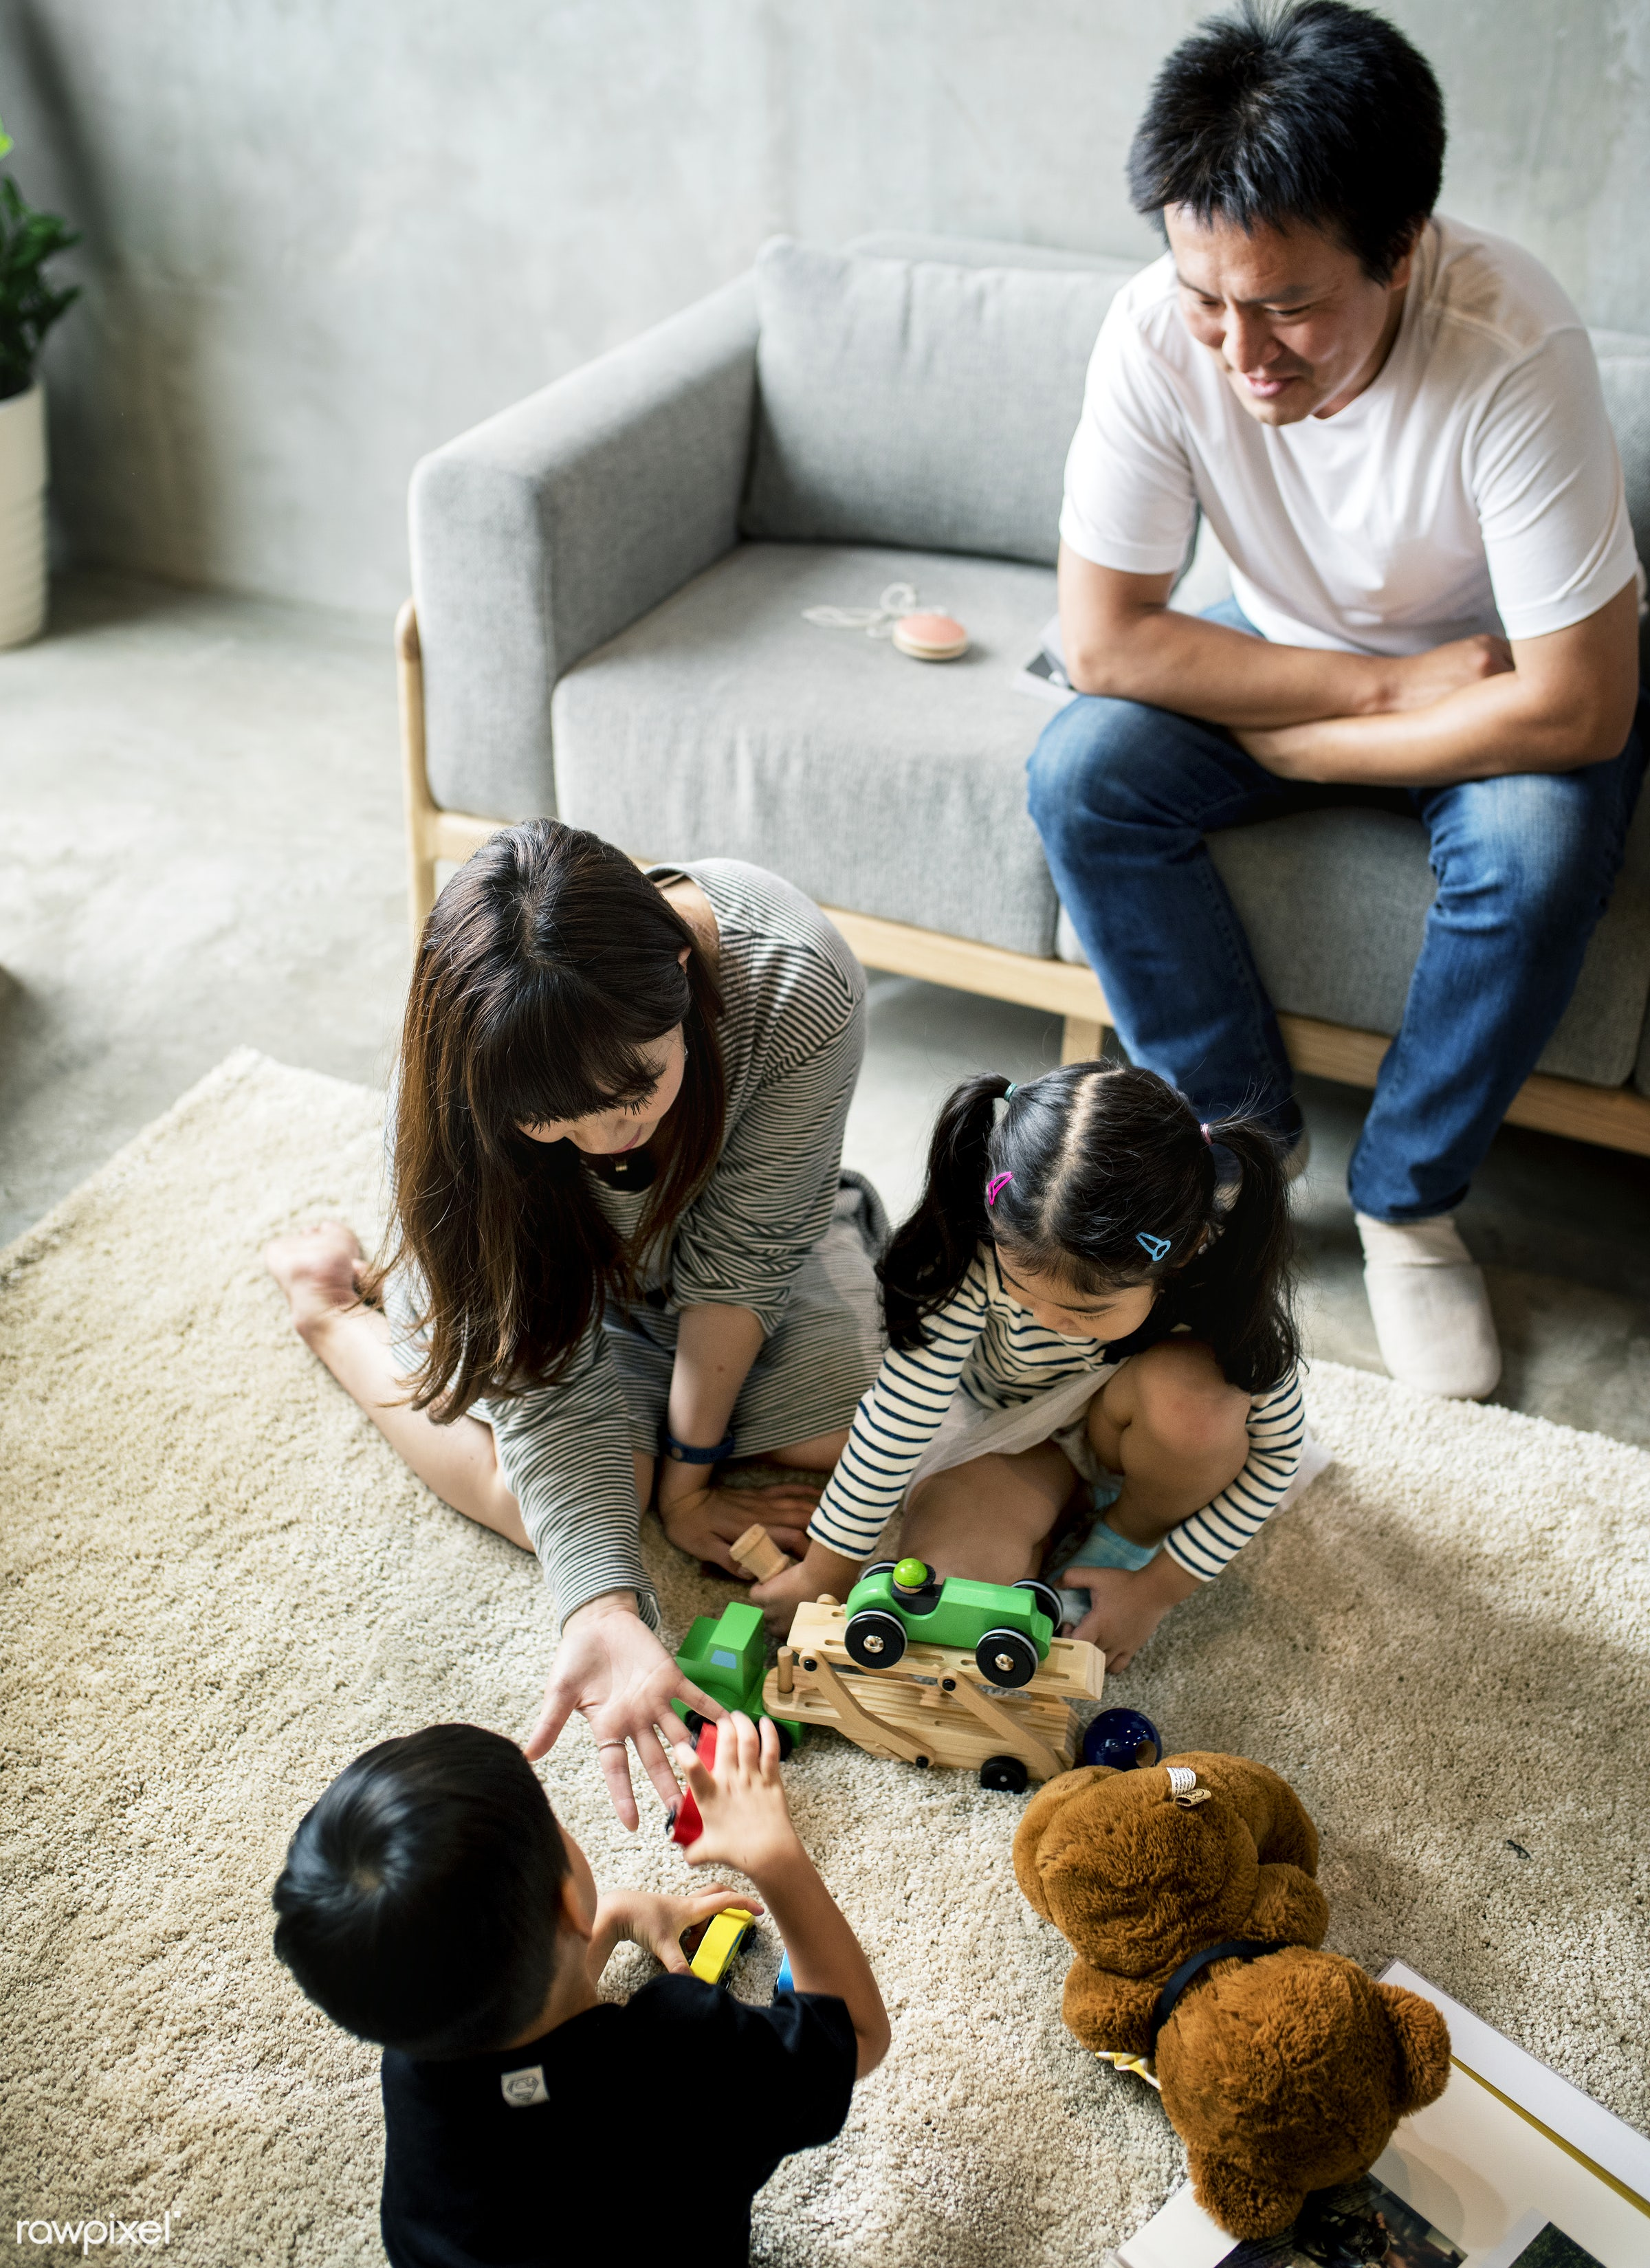 family, playing, japan, sister, adorable, asian, brother, casual, childhood, children, happiness, hobby, innocence, japanese...